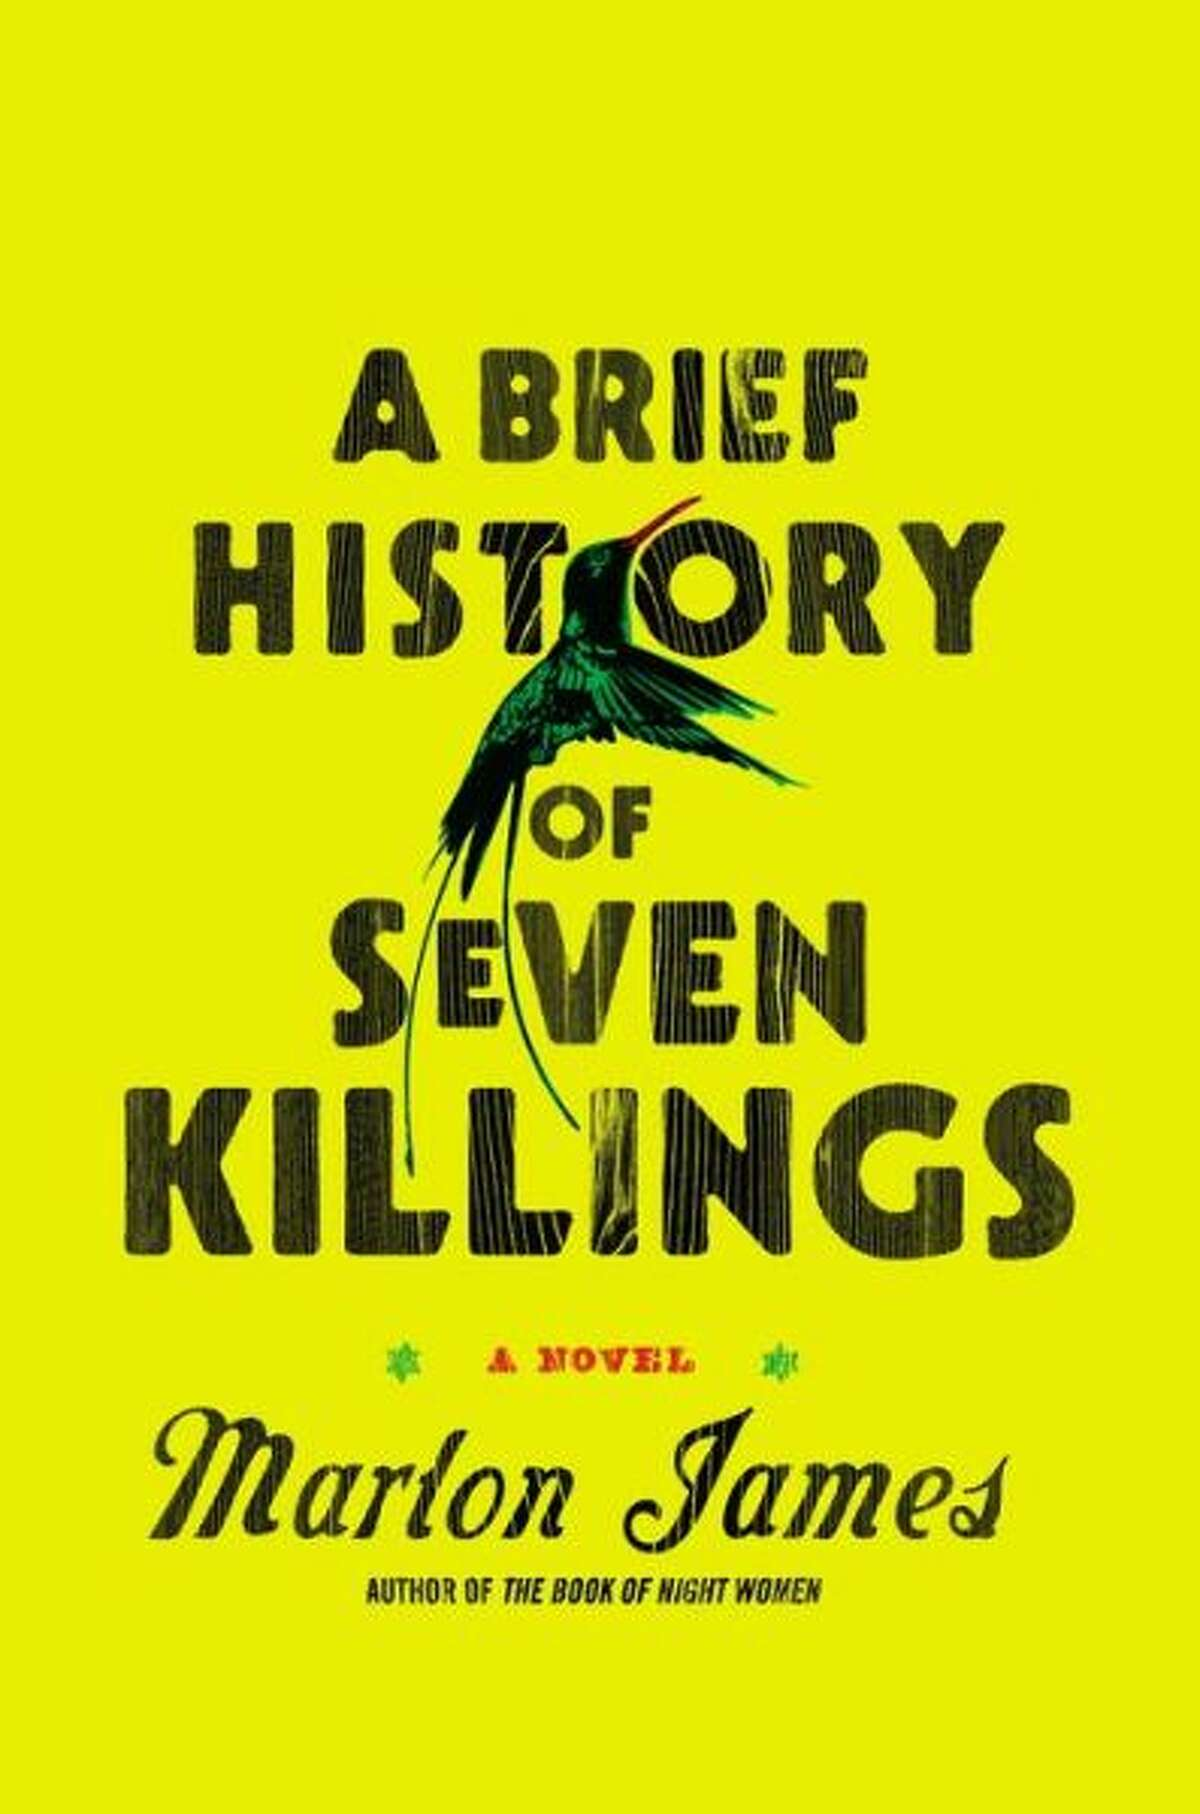 """Fiction:""""A Brief History of Seven Killings"""" by Marlon James. Anchored by the attempted 1976 assassination of Bob Marley, who is referred to as """"the Singer"""" throughout, James' story is narrated by more than a dozen voices, including a gangster, a boy soldier, a CIA station chief and a middle-class woman who emigrates to the U.S. This is a book about organized crime in Jamaica, and James' stylistic daring gives it an immediate, unforgettable power. (Riverhead)"""